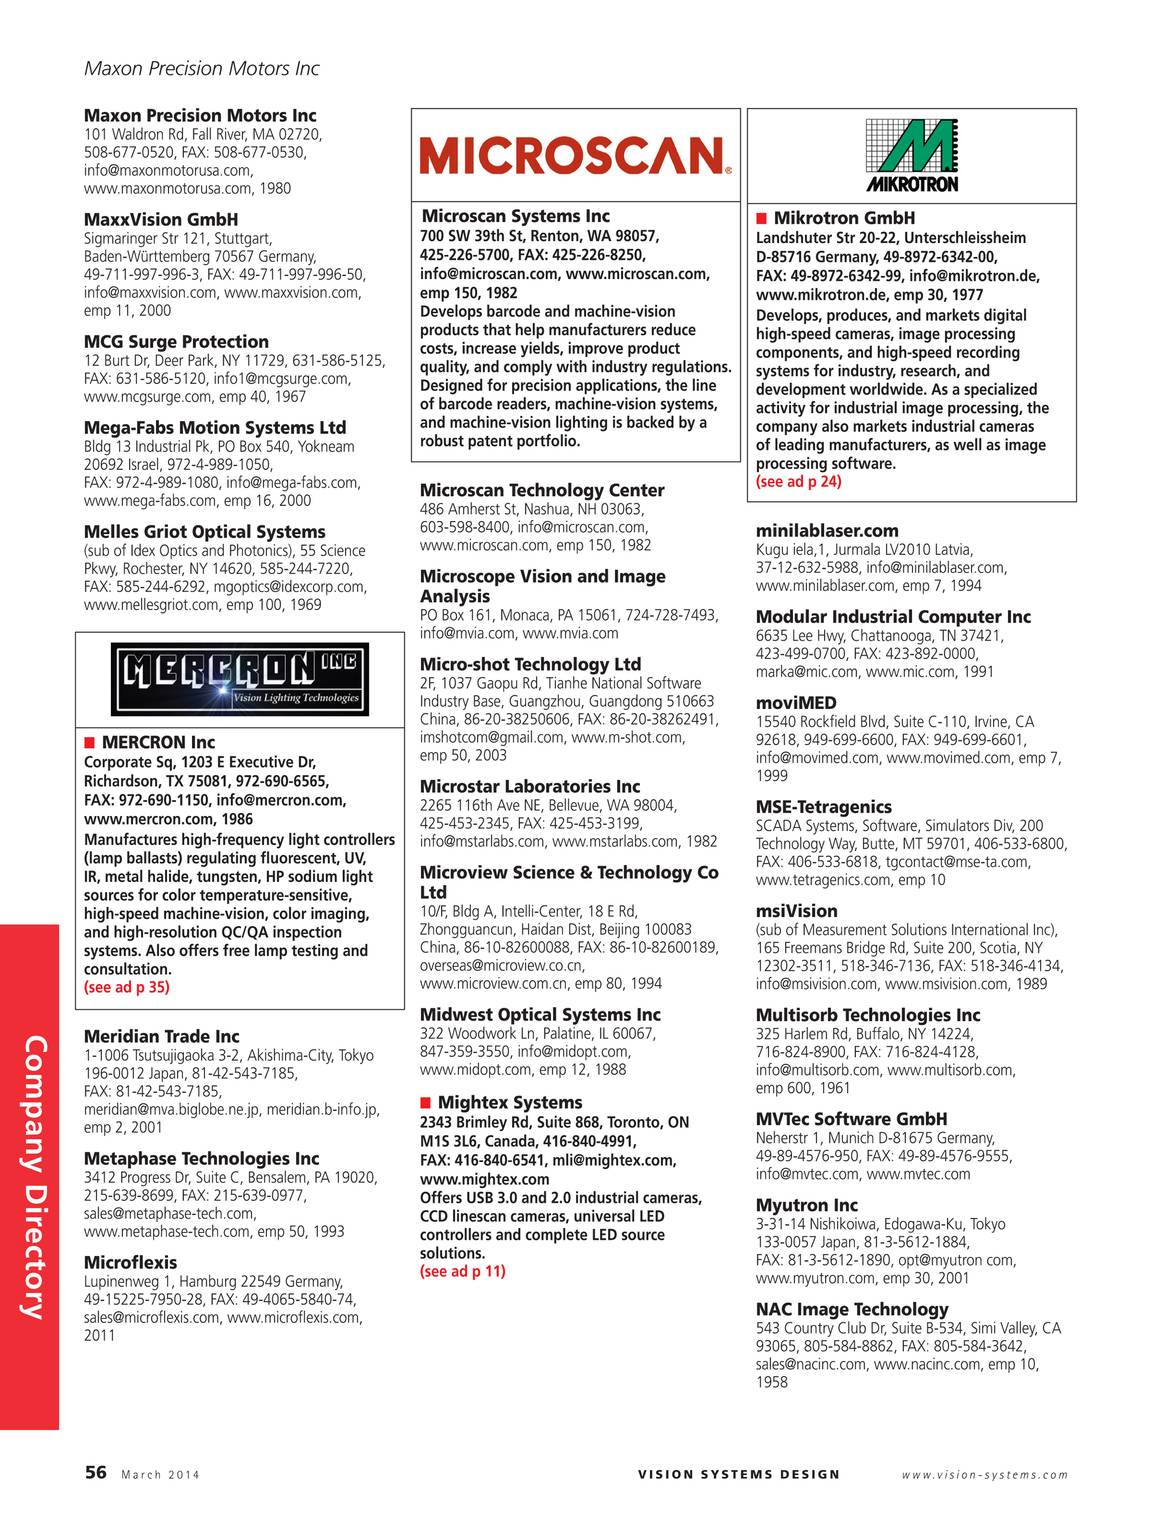 Vision Systems - March 2014 - page 55